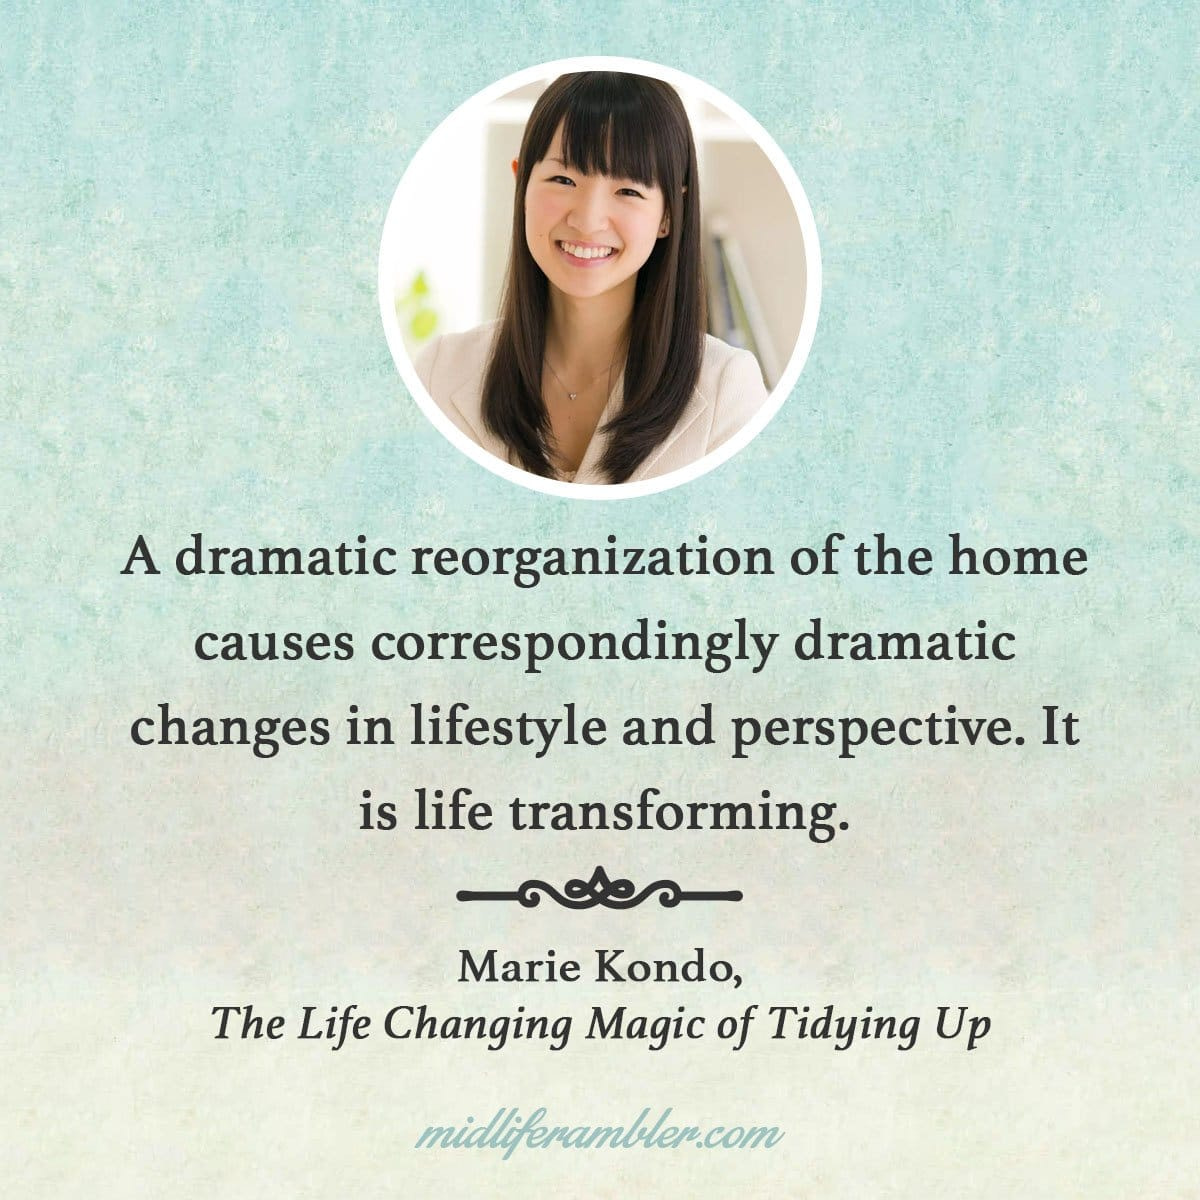 5 Tips for Tidying Up You Won't Learn from Marie Kondo's Netflix Show - A dramatic reorganization of the home causes correspondingly dramatic changes in lifestyle and perspective. It is life transforming. - Marie Kondo, The Life Changing Magic of Tidying Up